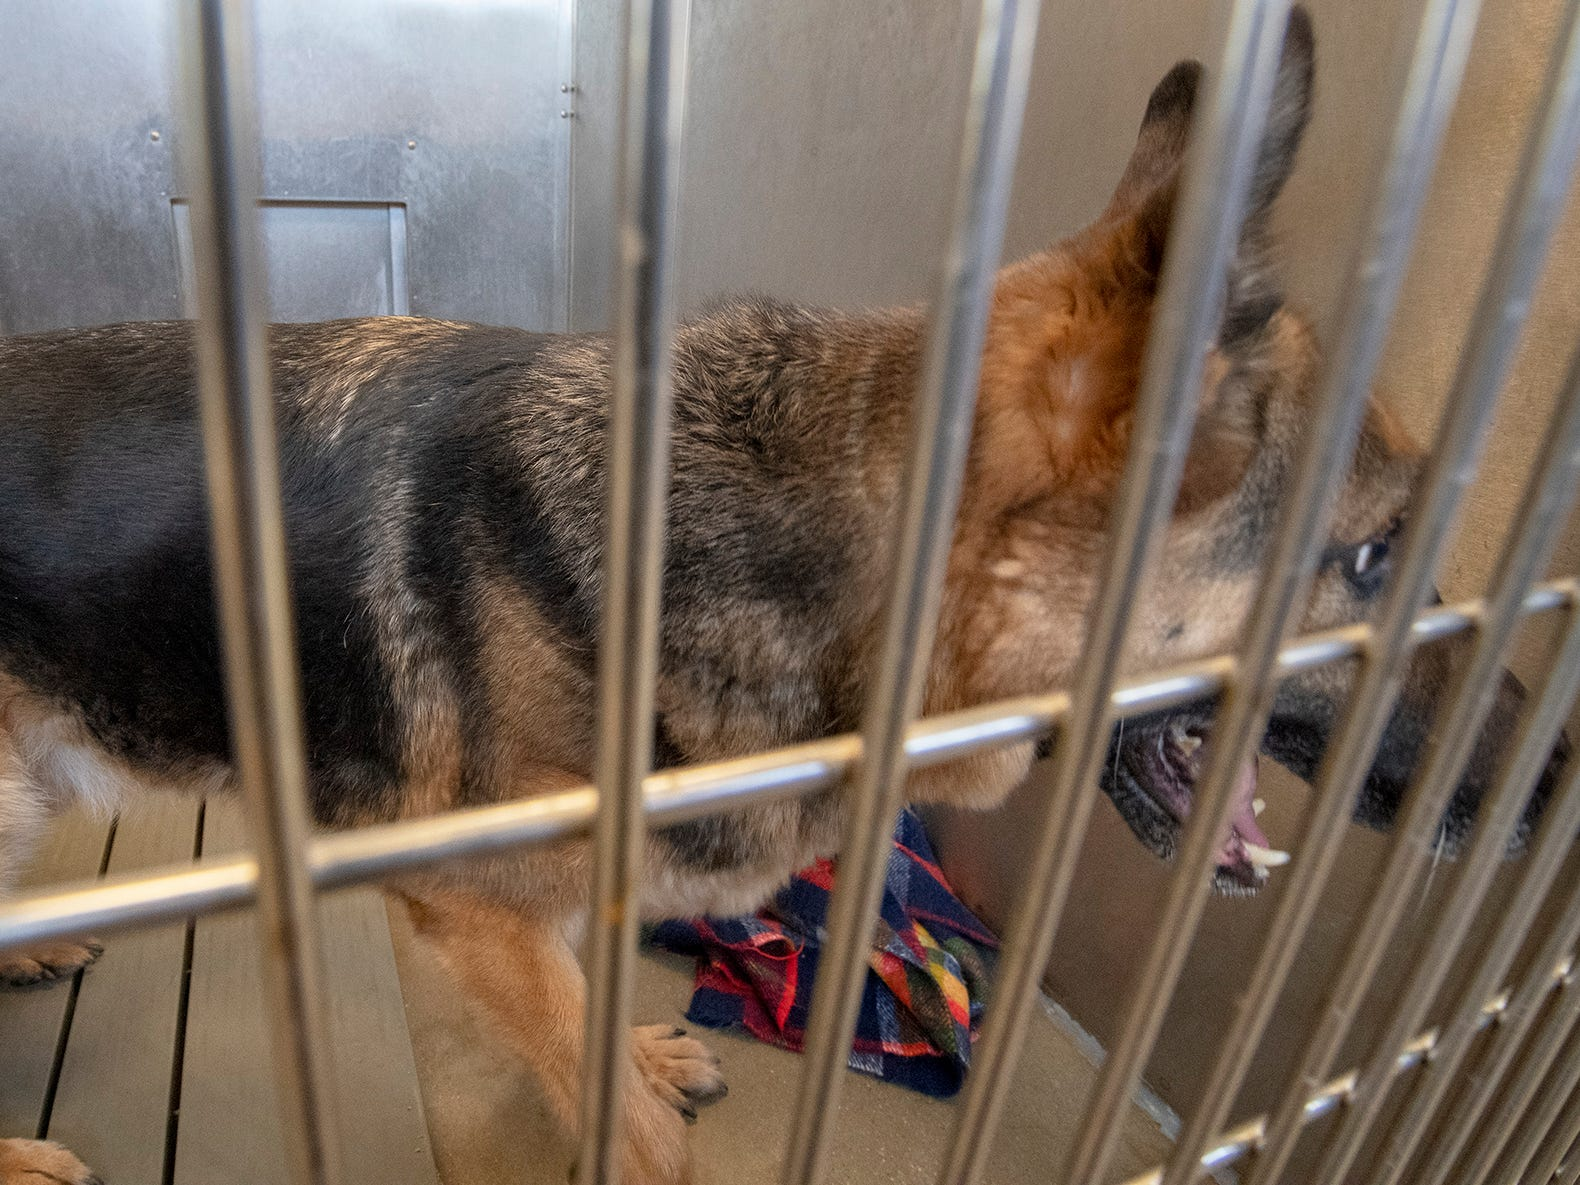 Tiger is an 8-year-old German Shepherd who was brought to the shelter because his owner didn't have enough time for him. He has lived with kids and cats, but is nervous with other dogs. Tiger is looking for someone with experience with Shepherds and is available for adoption at the York County SPCA Tuesday February 26, 2019.